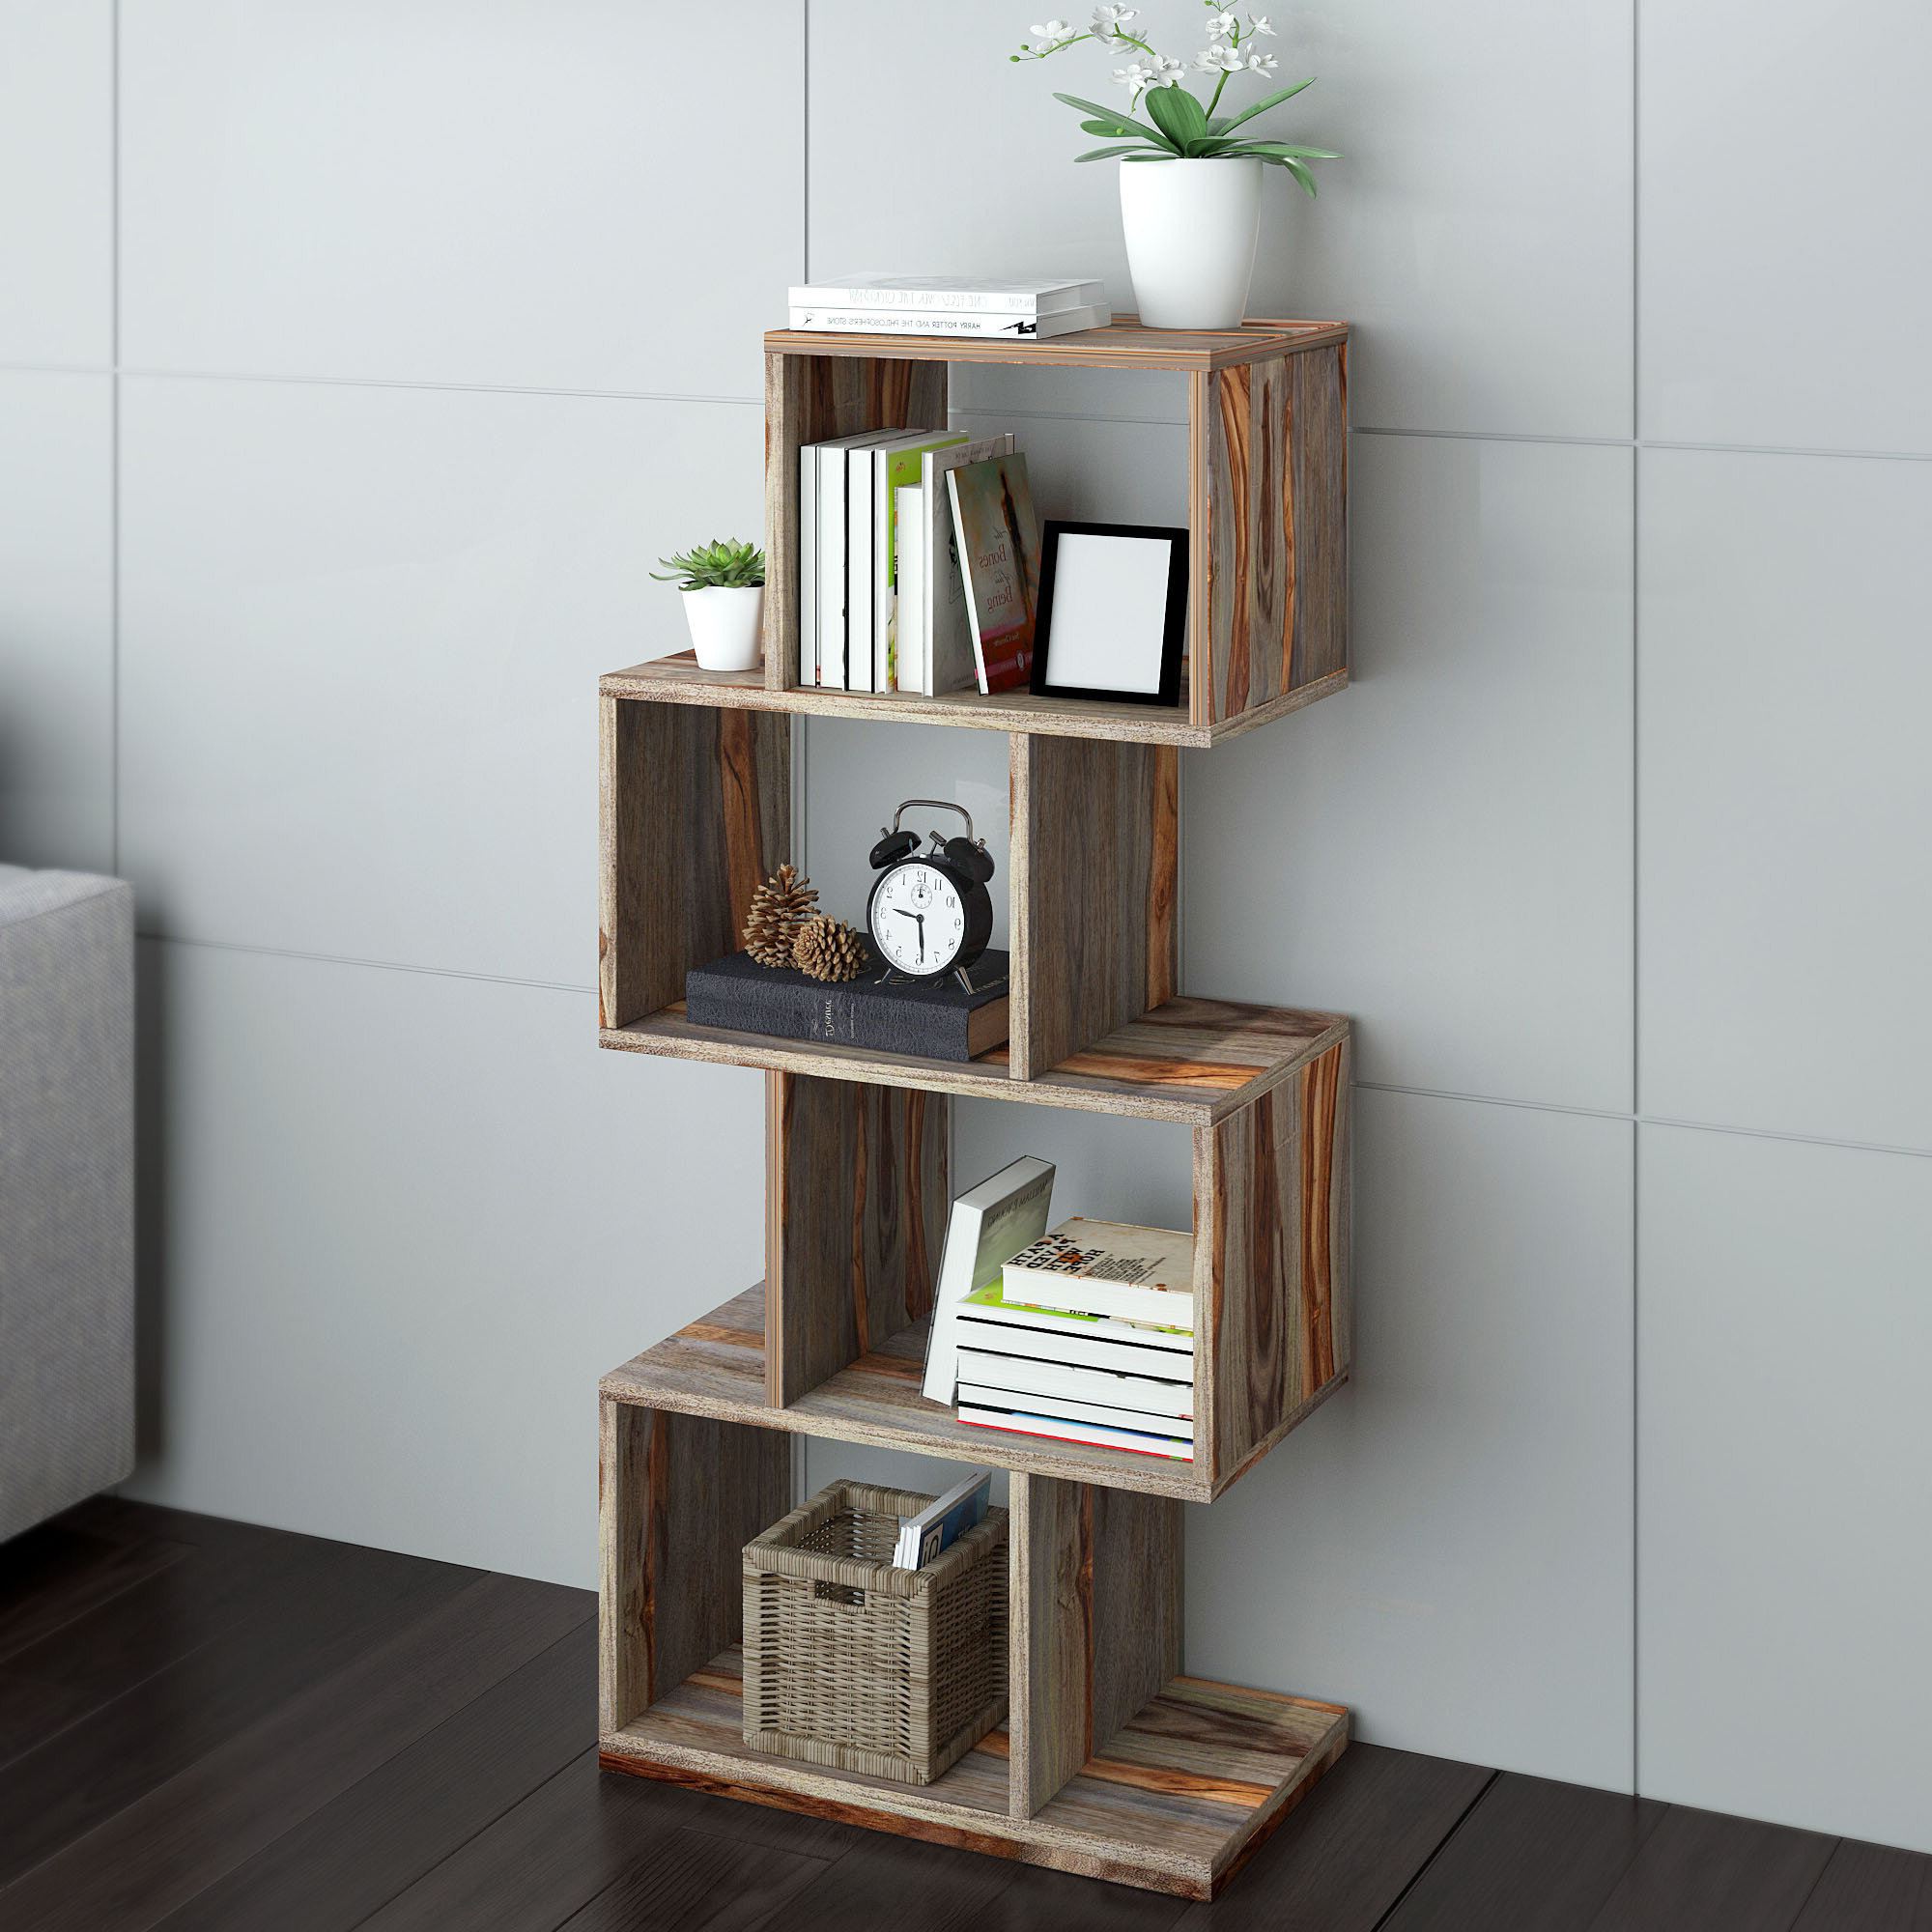 Wayfair Within Latest Maryln Standard Bookcases (View 16 of 20)